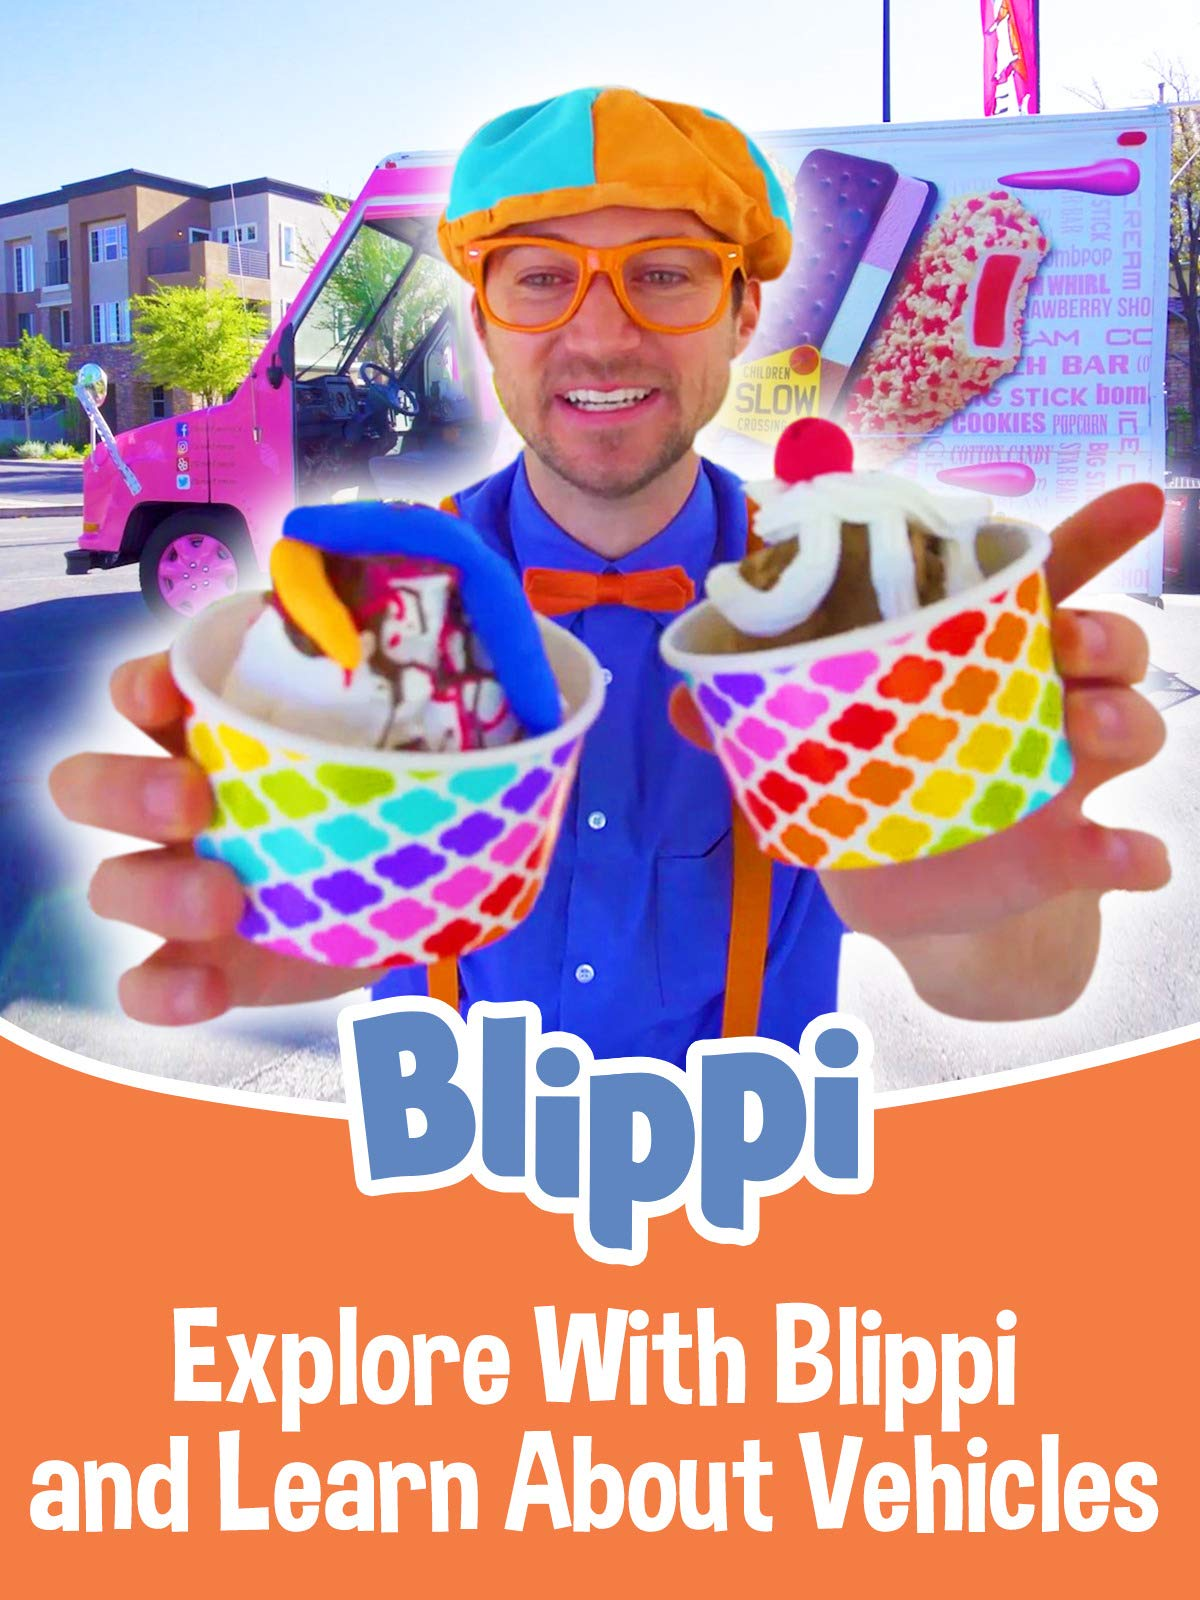 Blippi - Explore With Blippi and Learn About Vehicles on Amazon Prime Video UK